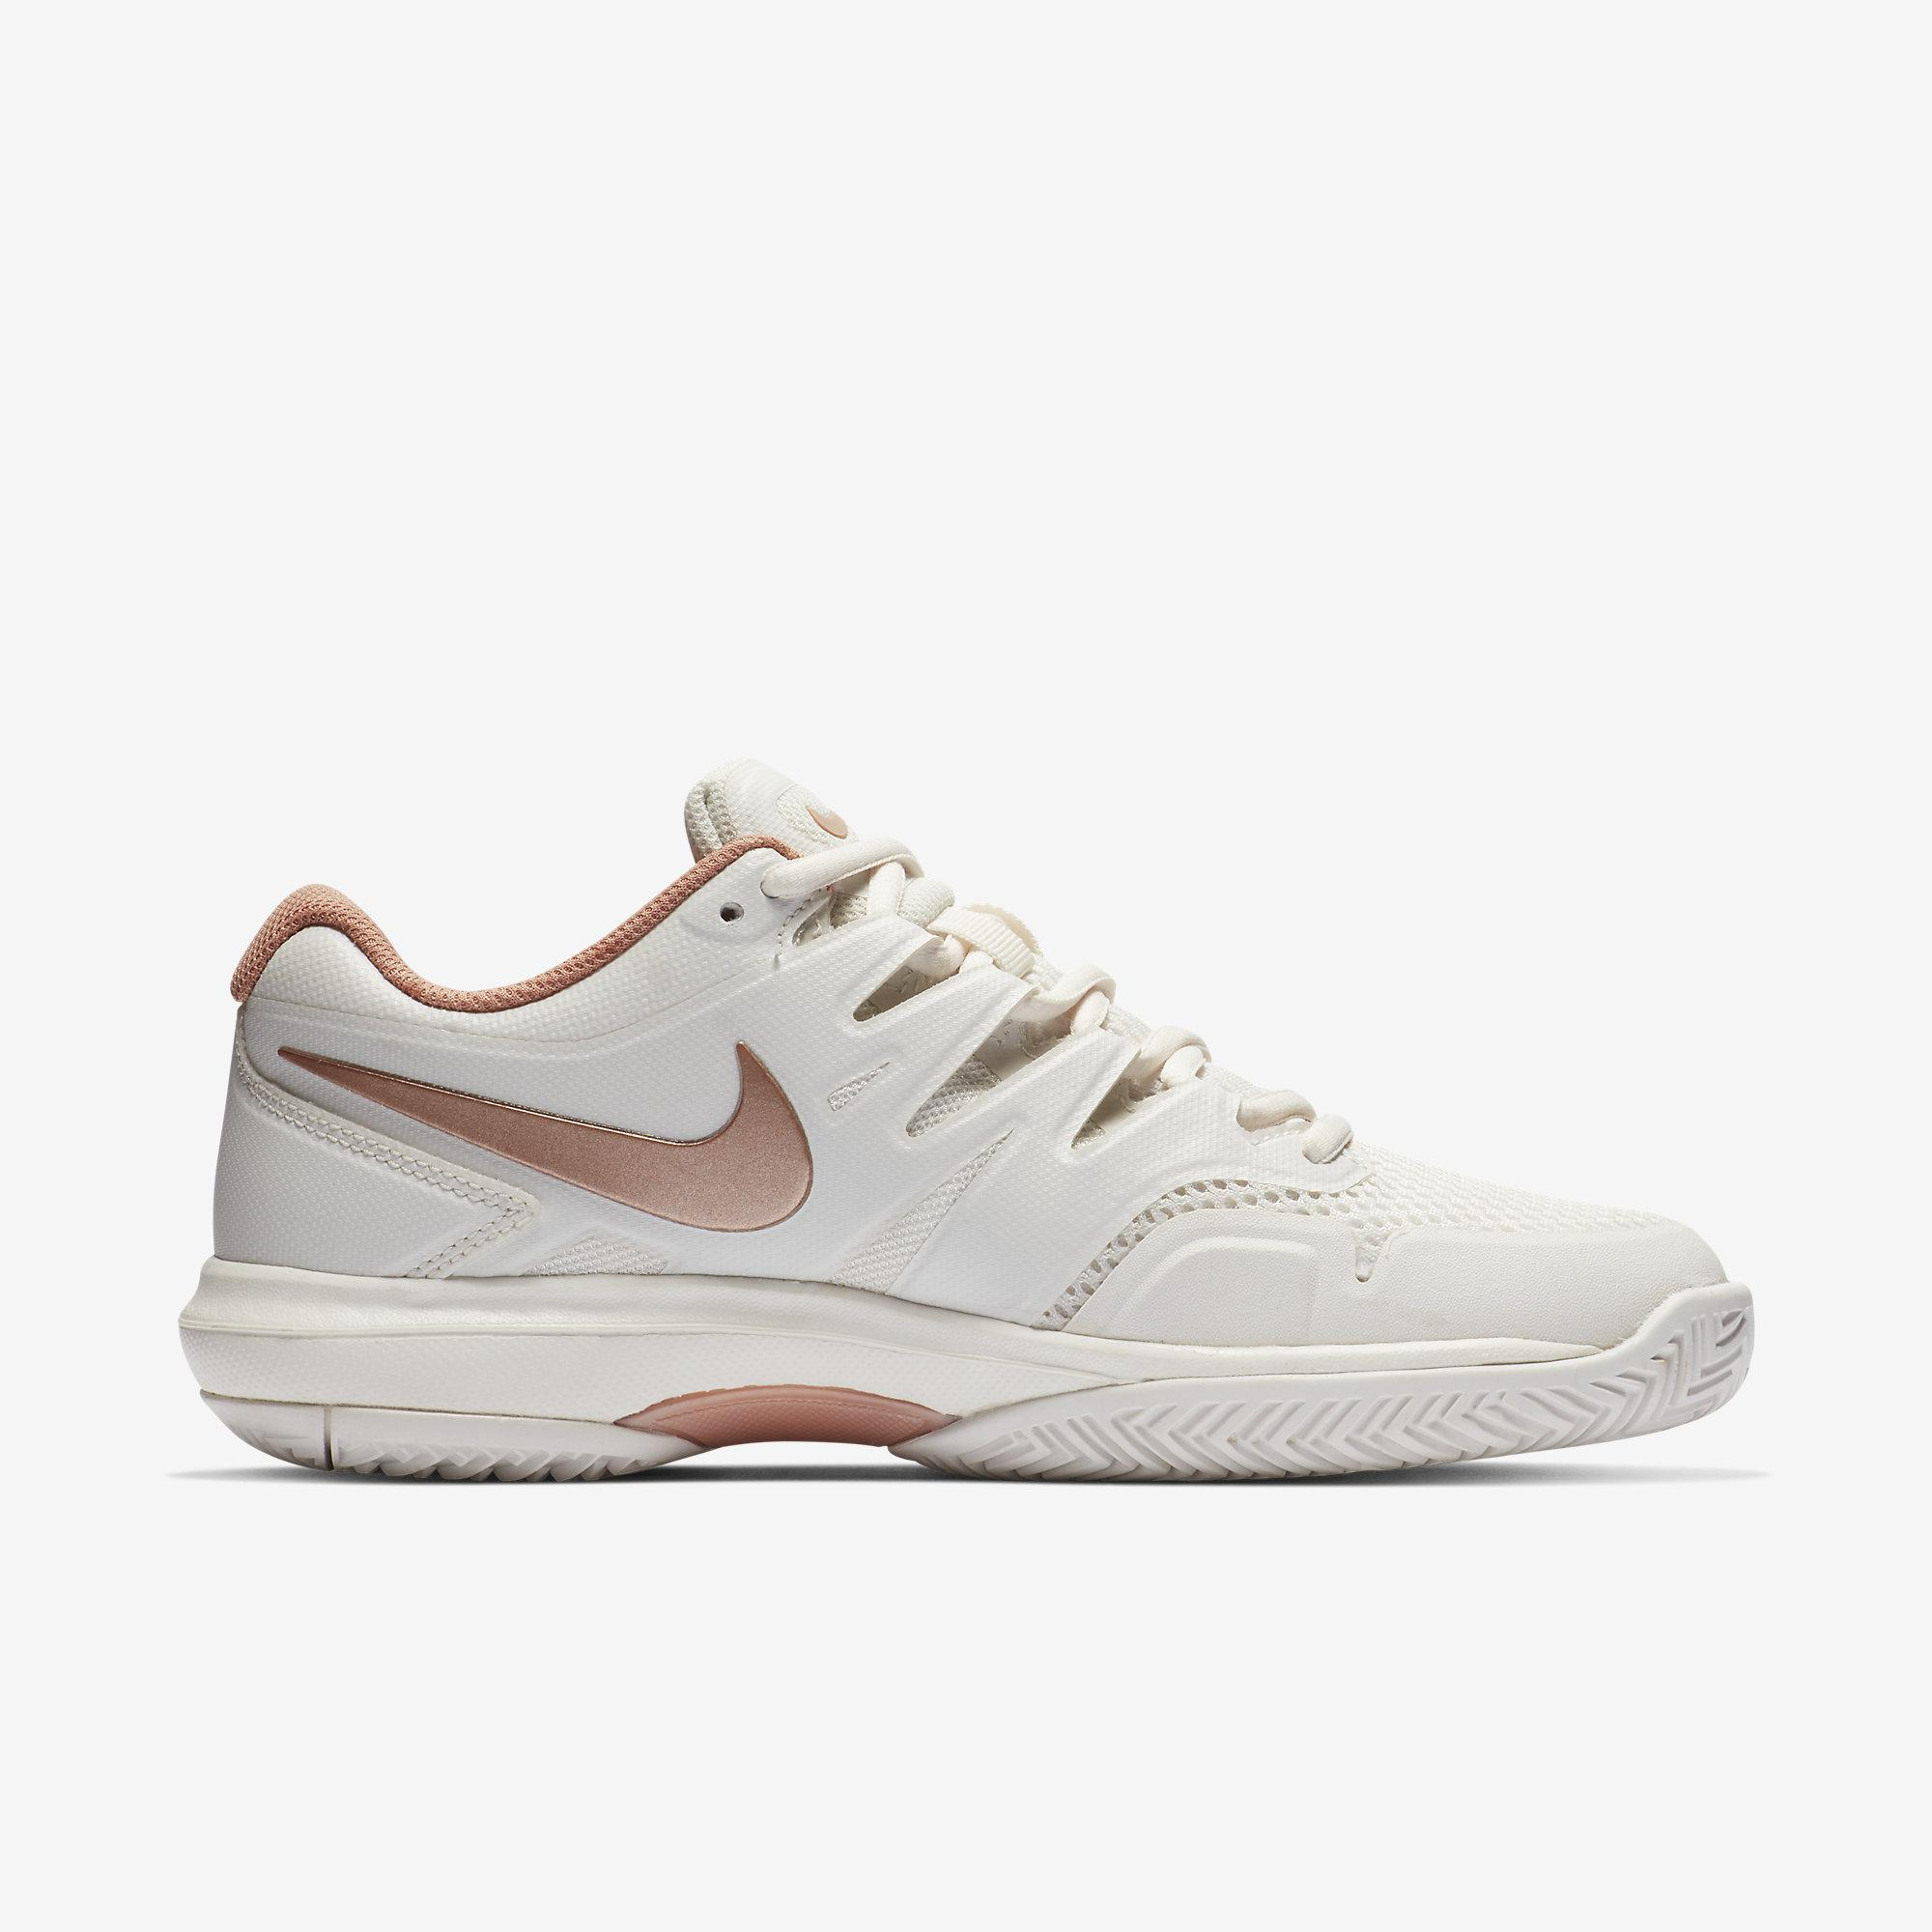 0ac7db31f1fb Nike Womens Air Zoom Prestige Tennis Shoes - Phantom Rose Gold ...